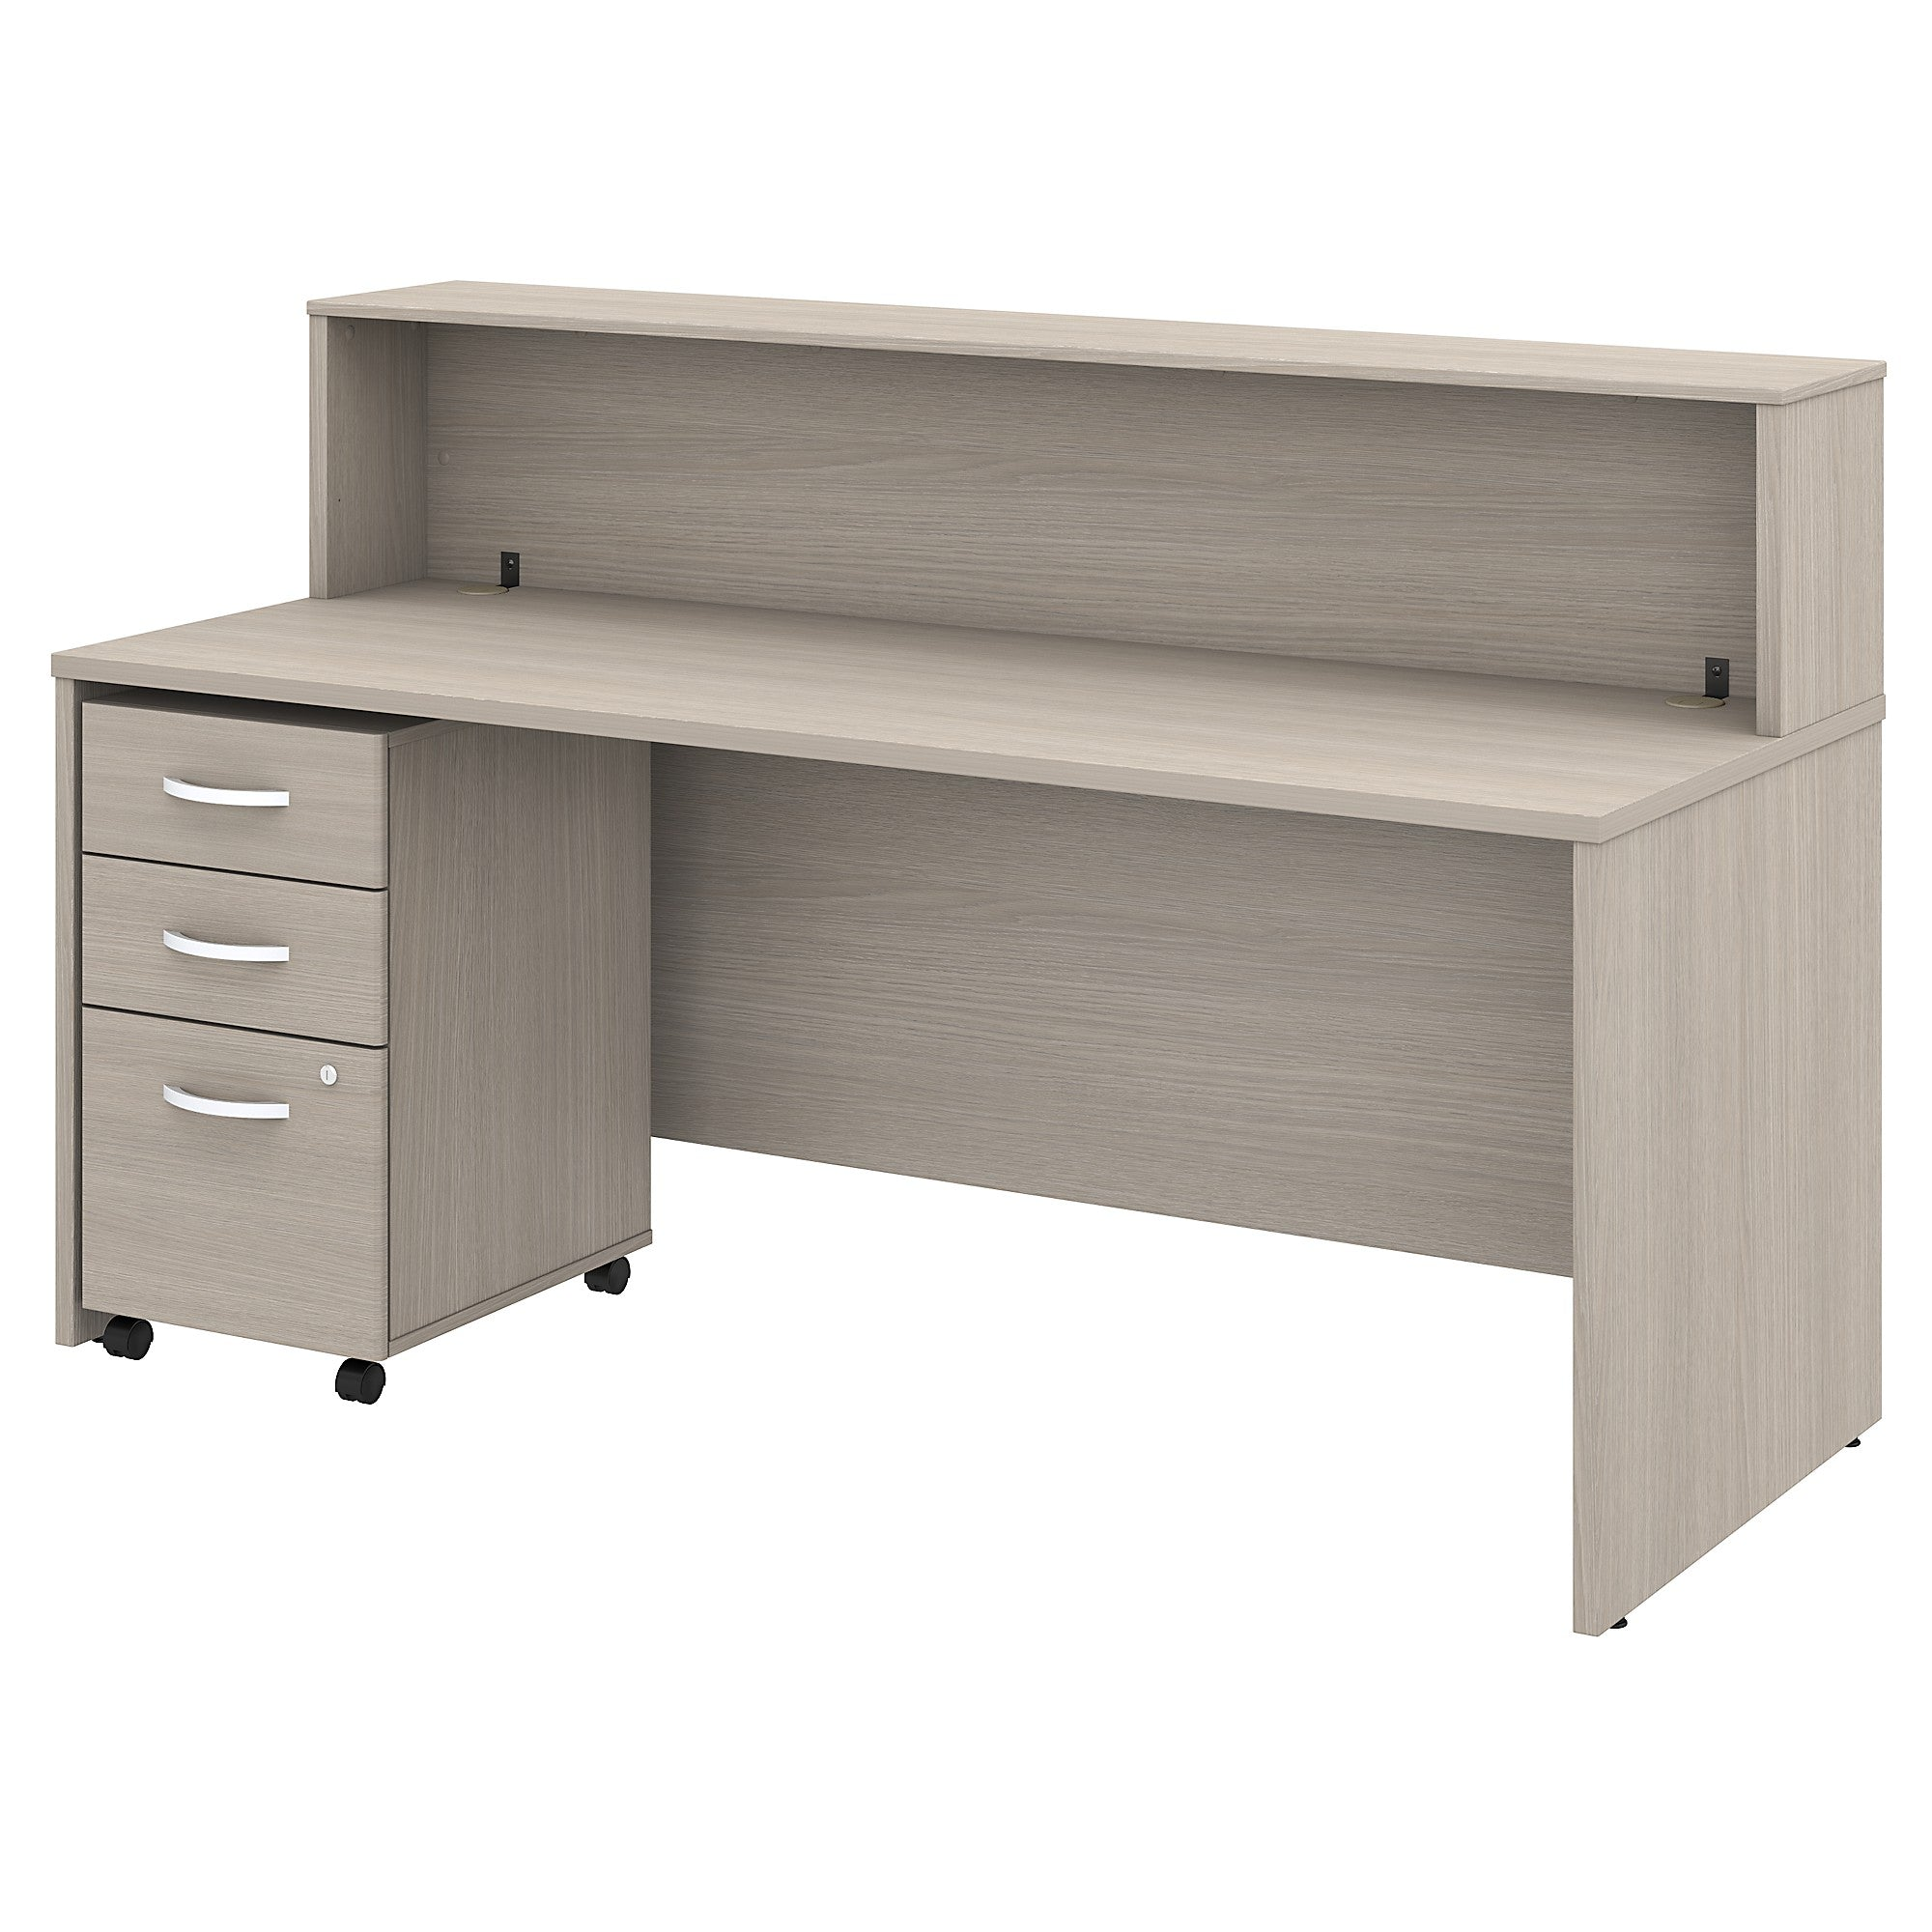 Studio C 72W Reception Desk with Shelf & Mobile File Cabinet